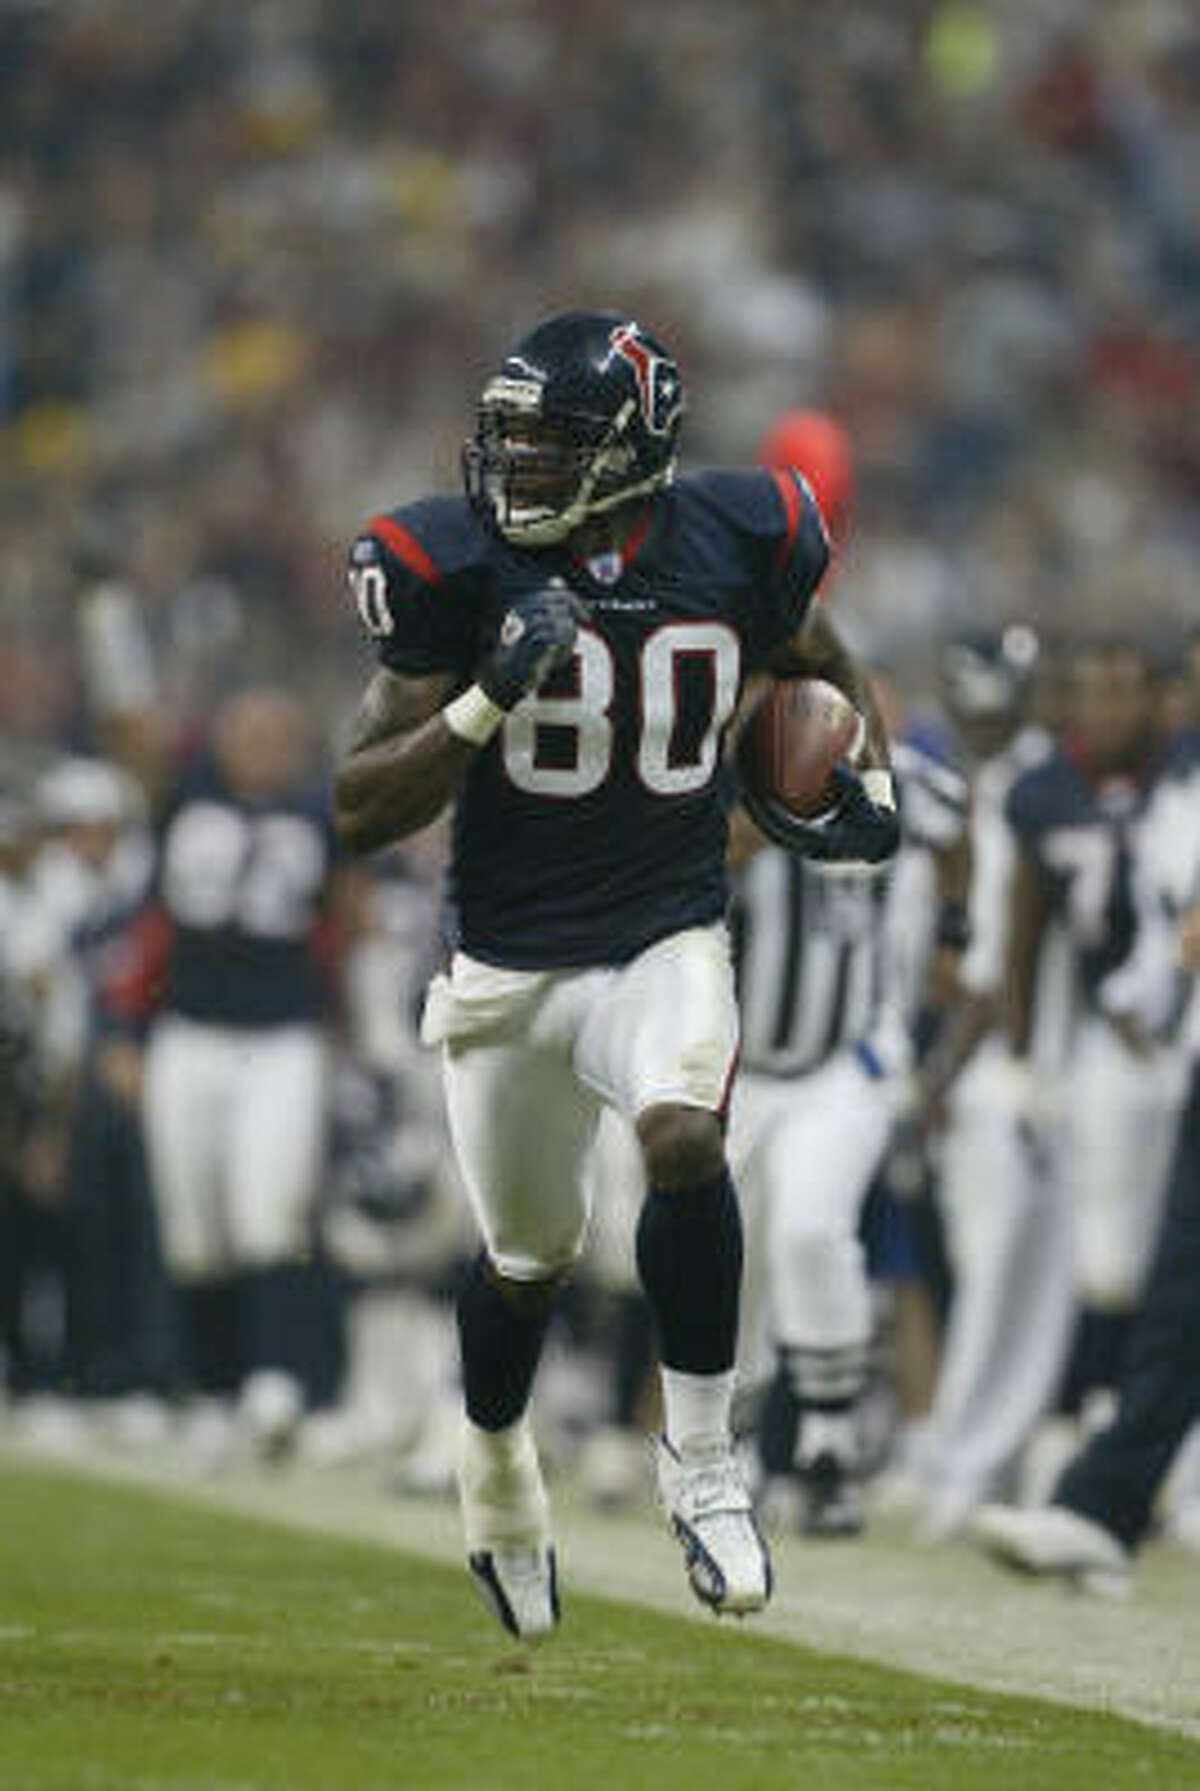 2004 Wide receiver Andre Johnson was named to his first Pro Bowl.